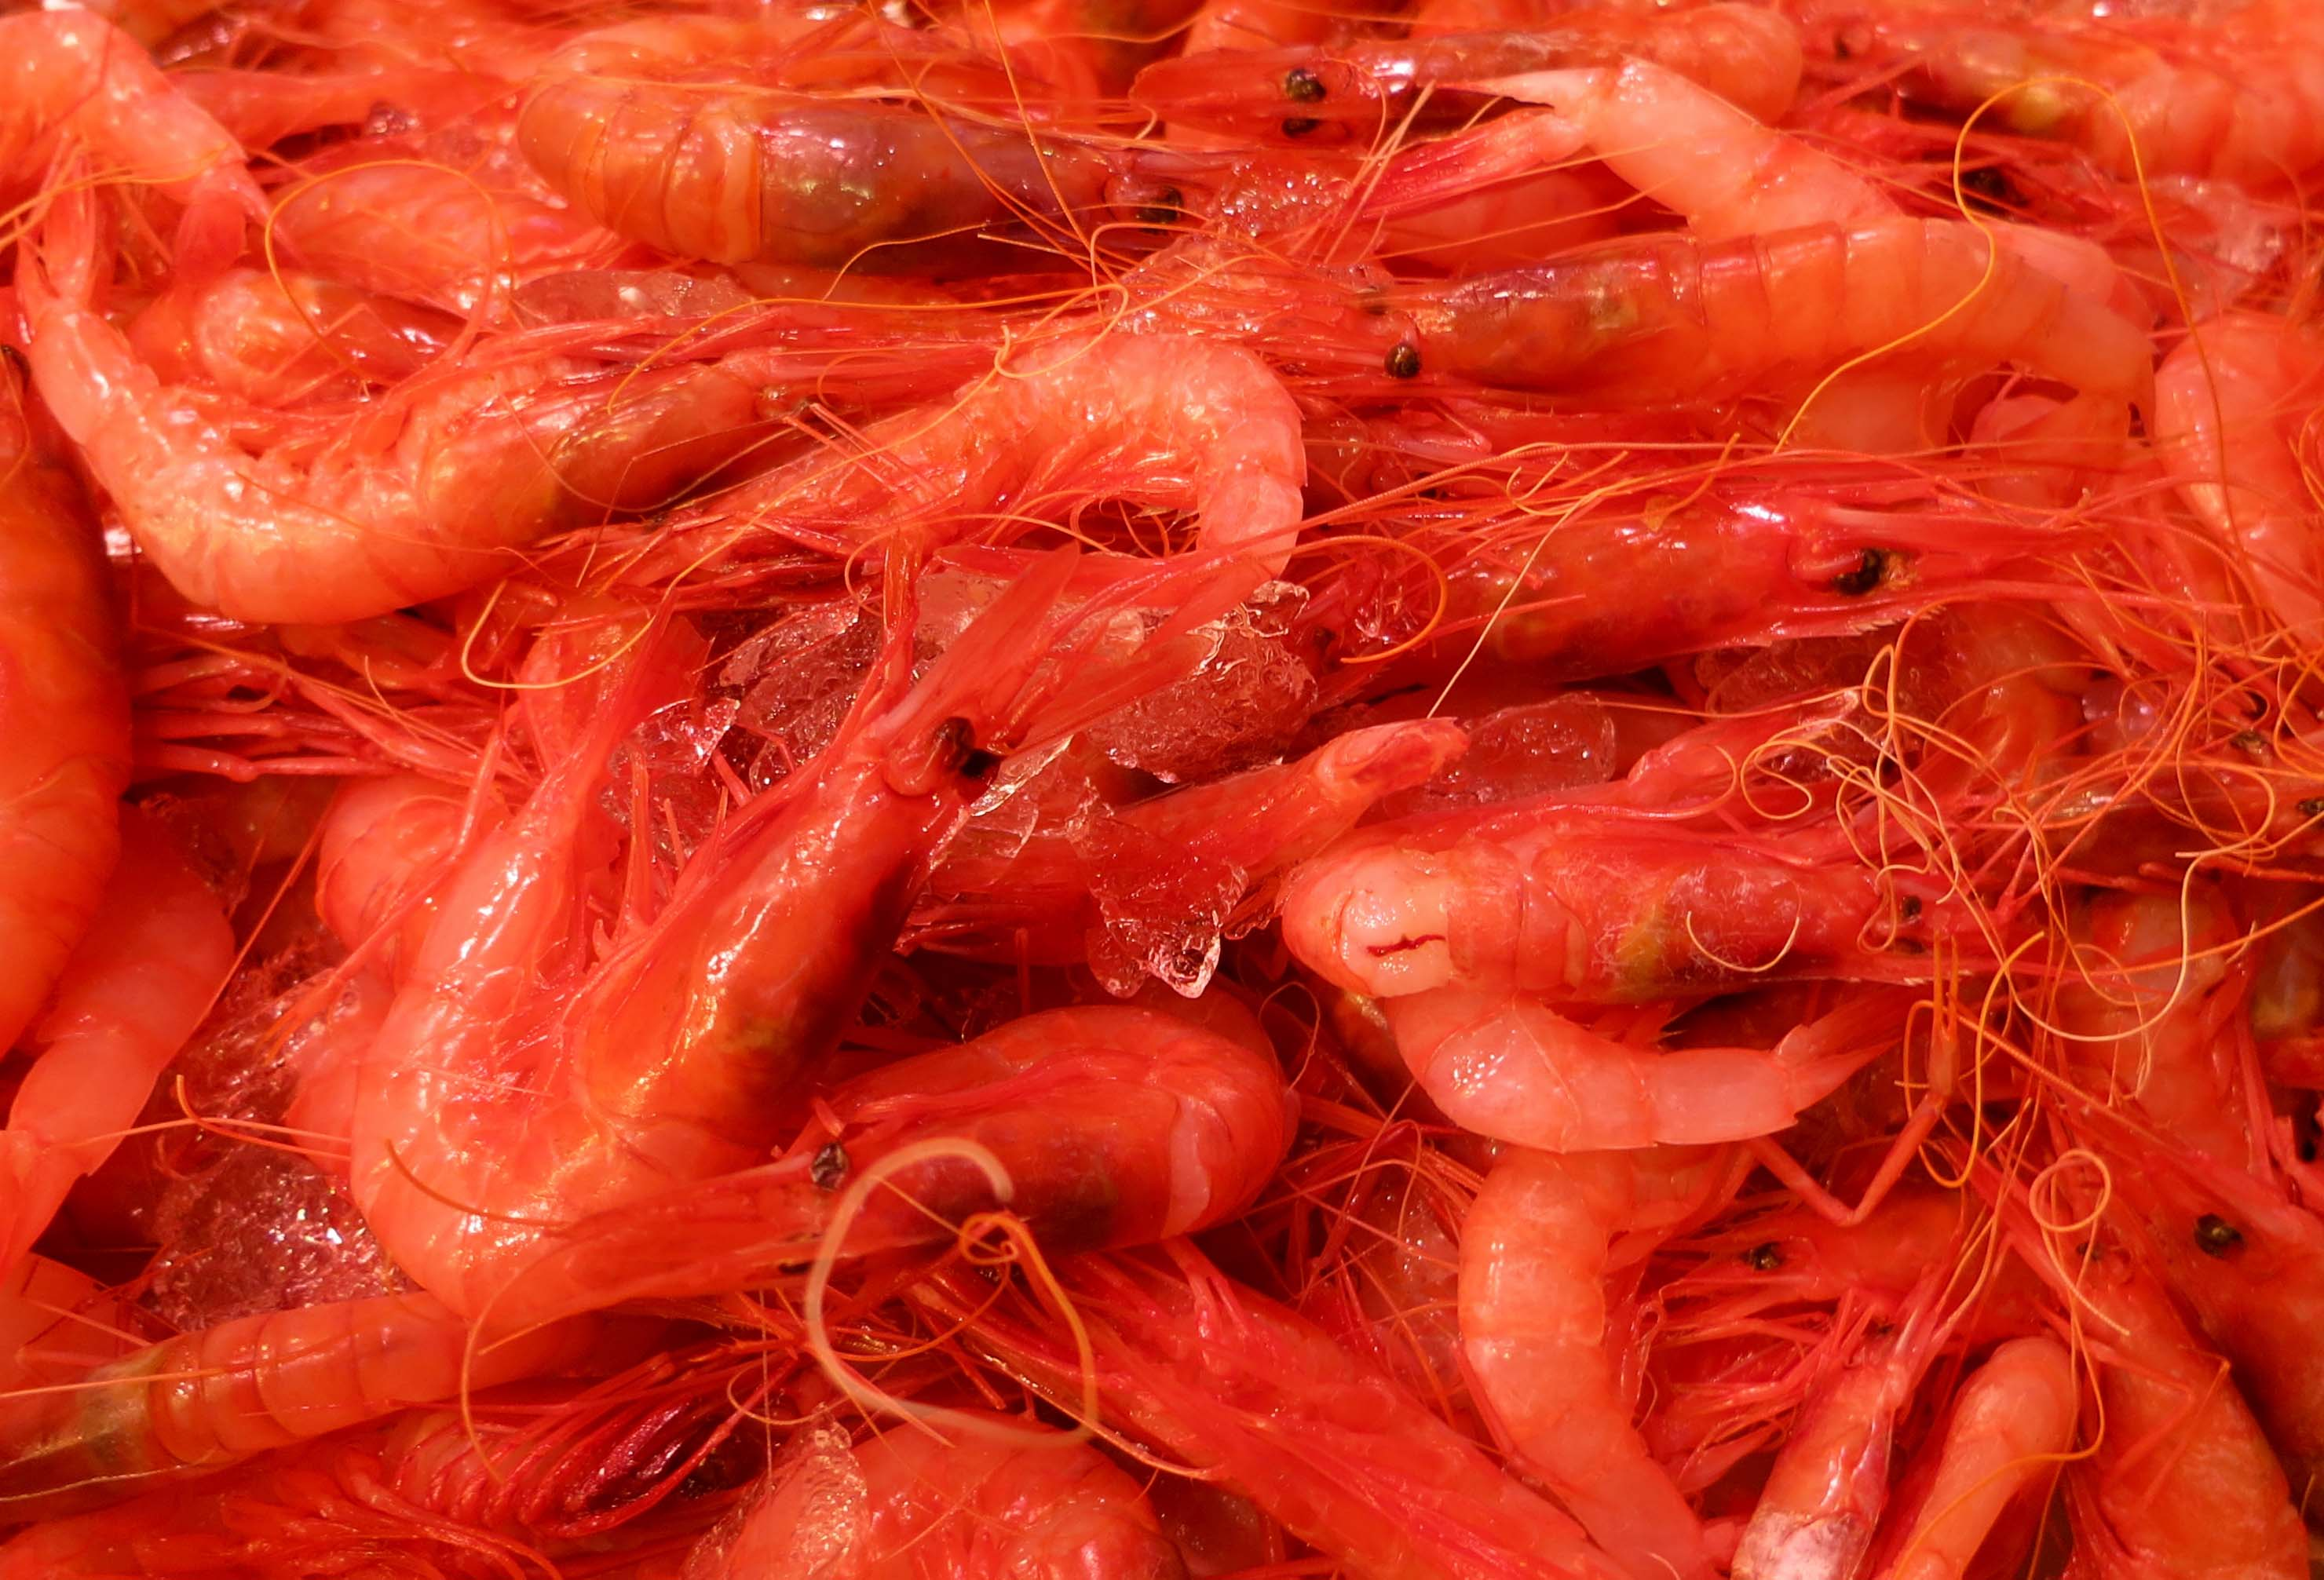 I found these shrimp colorful...